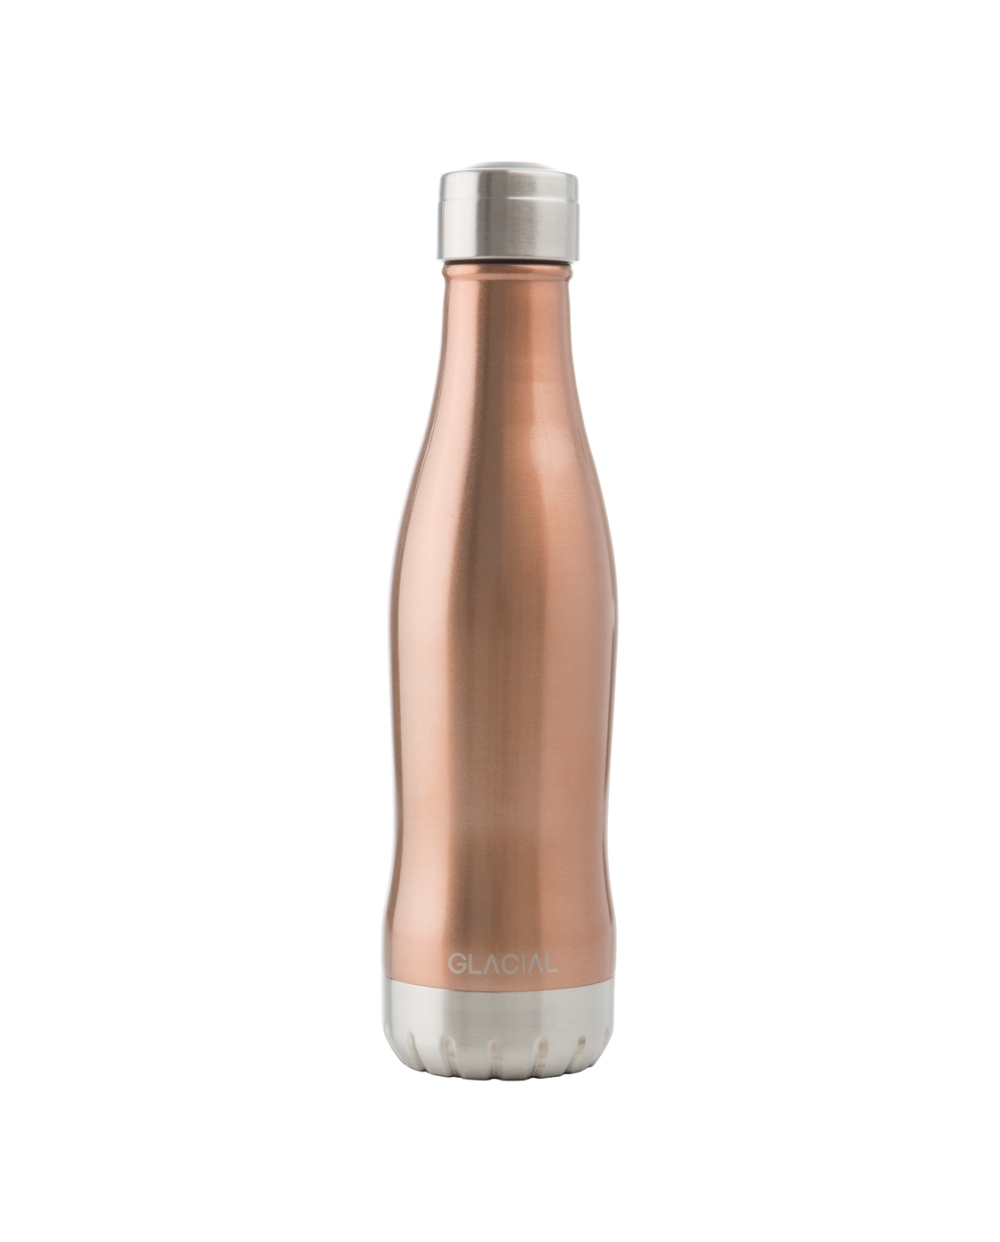 GLACIAL ROSE GOLD 400ML